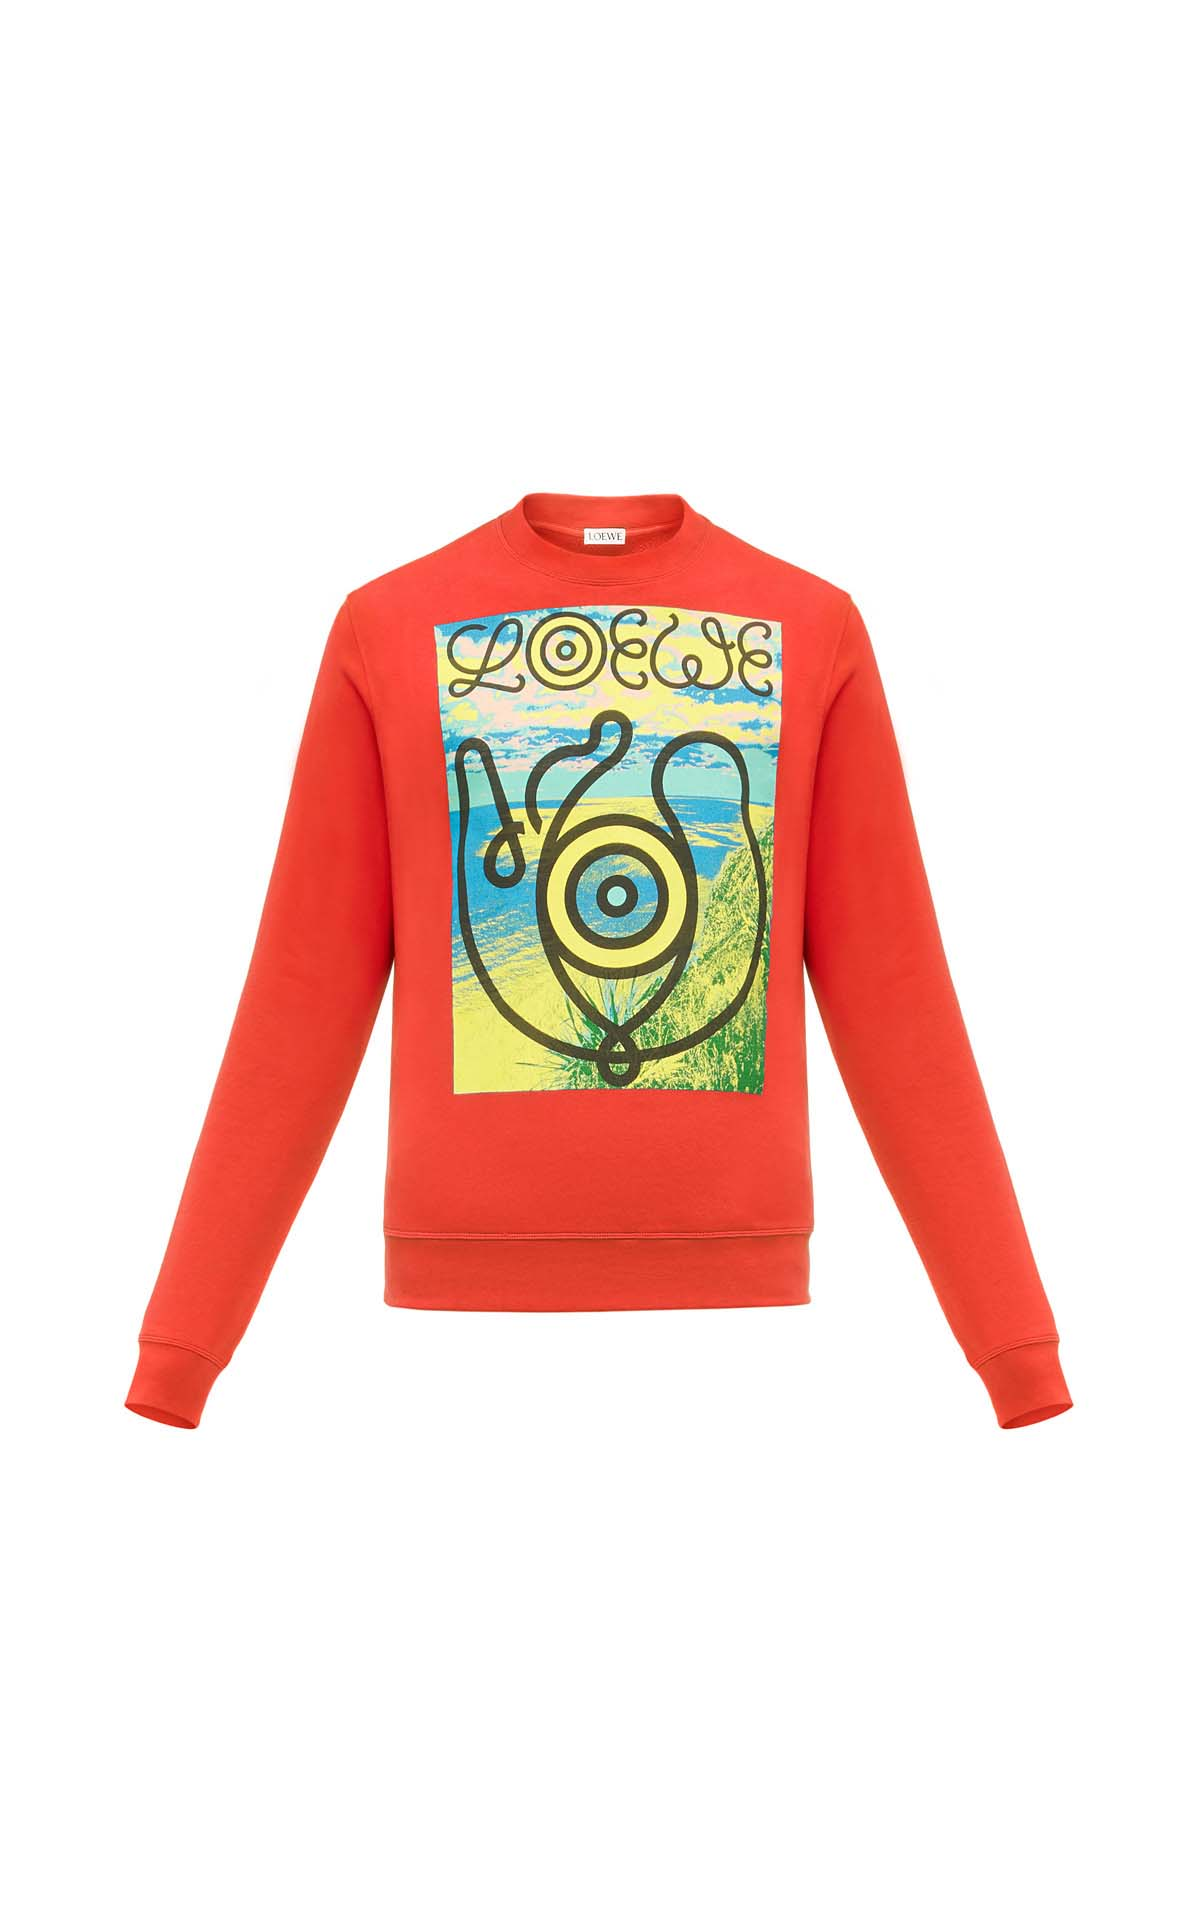 Loewe eye sweatshirt at The Bicester Village Shopping Collection